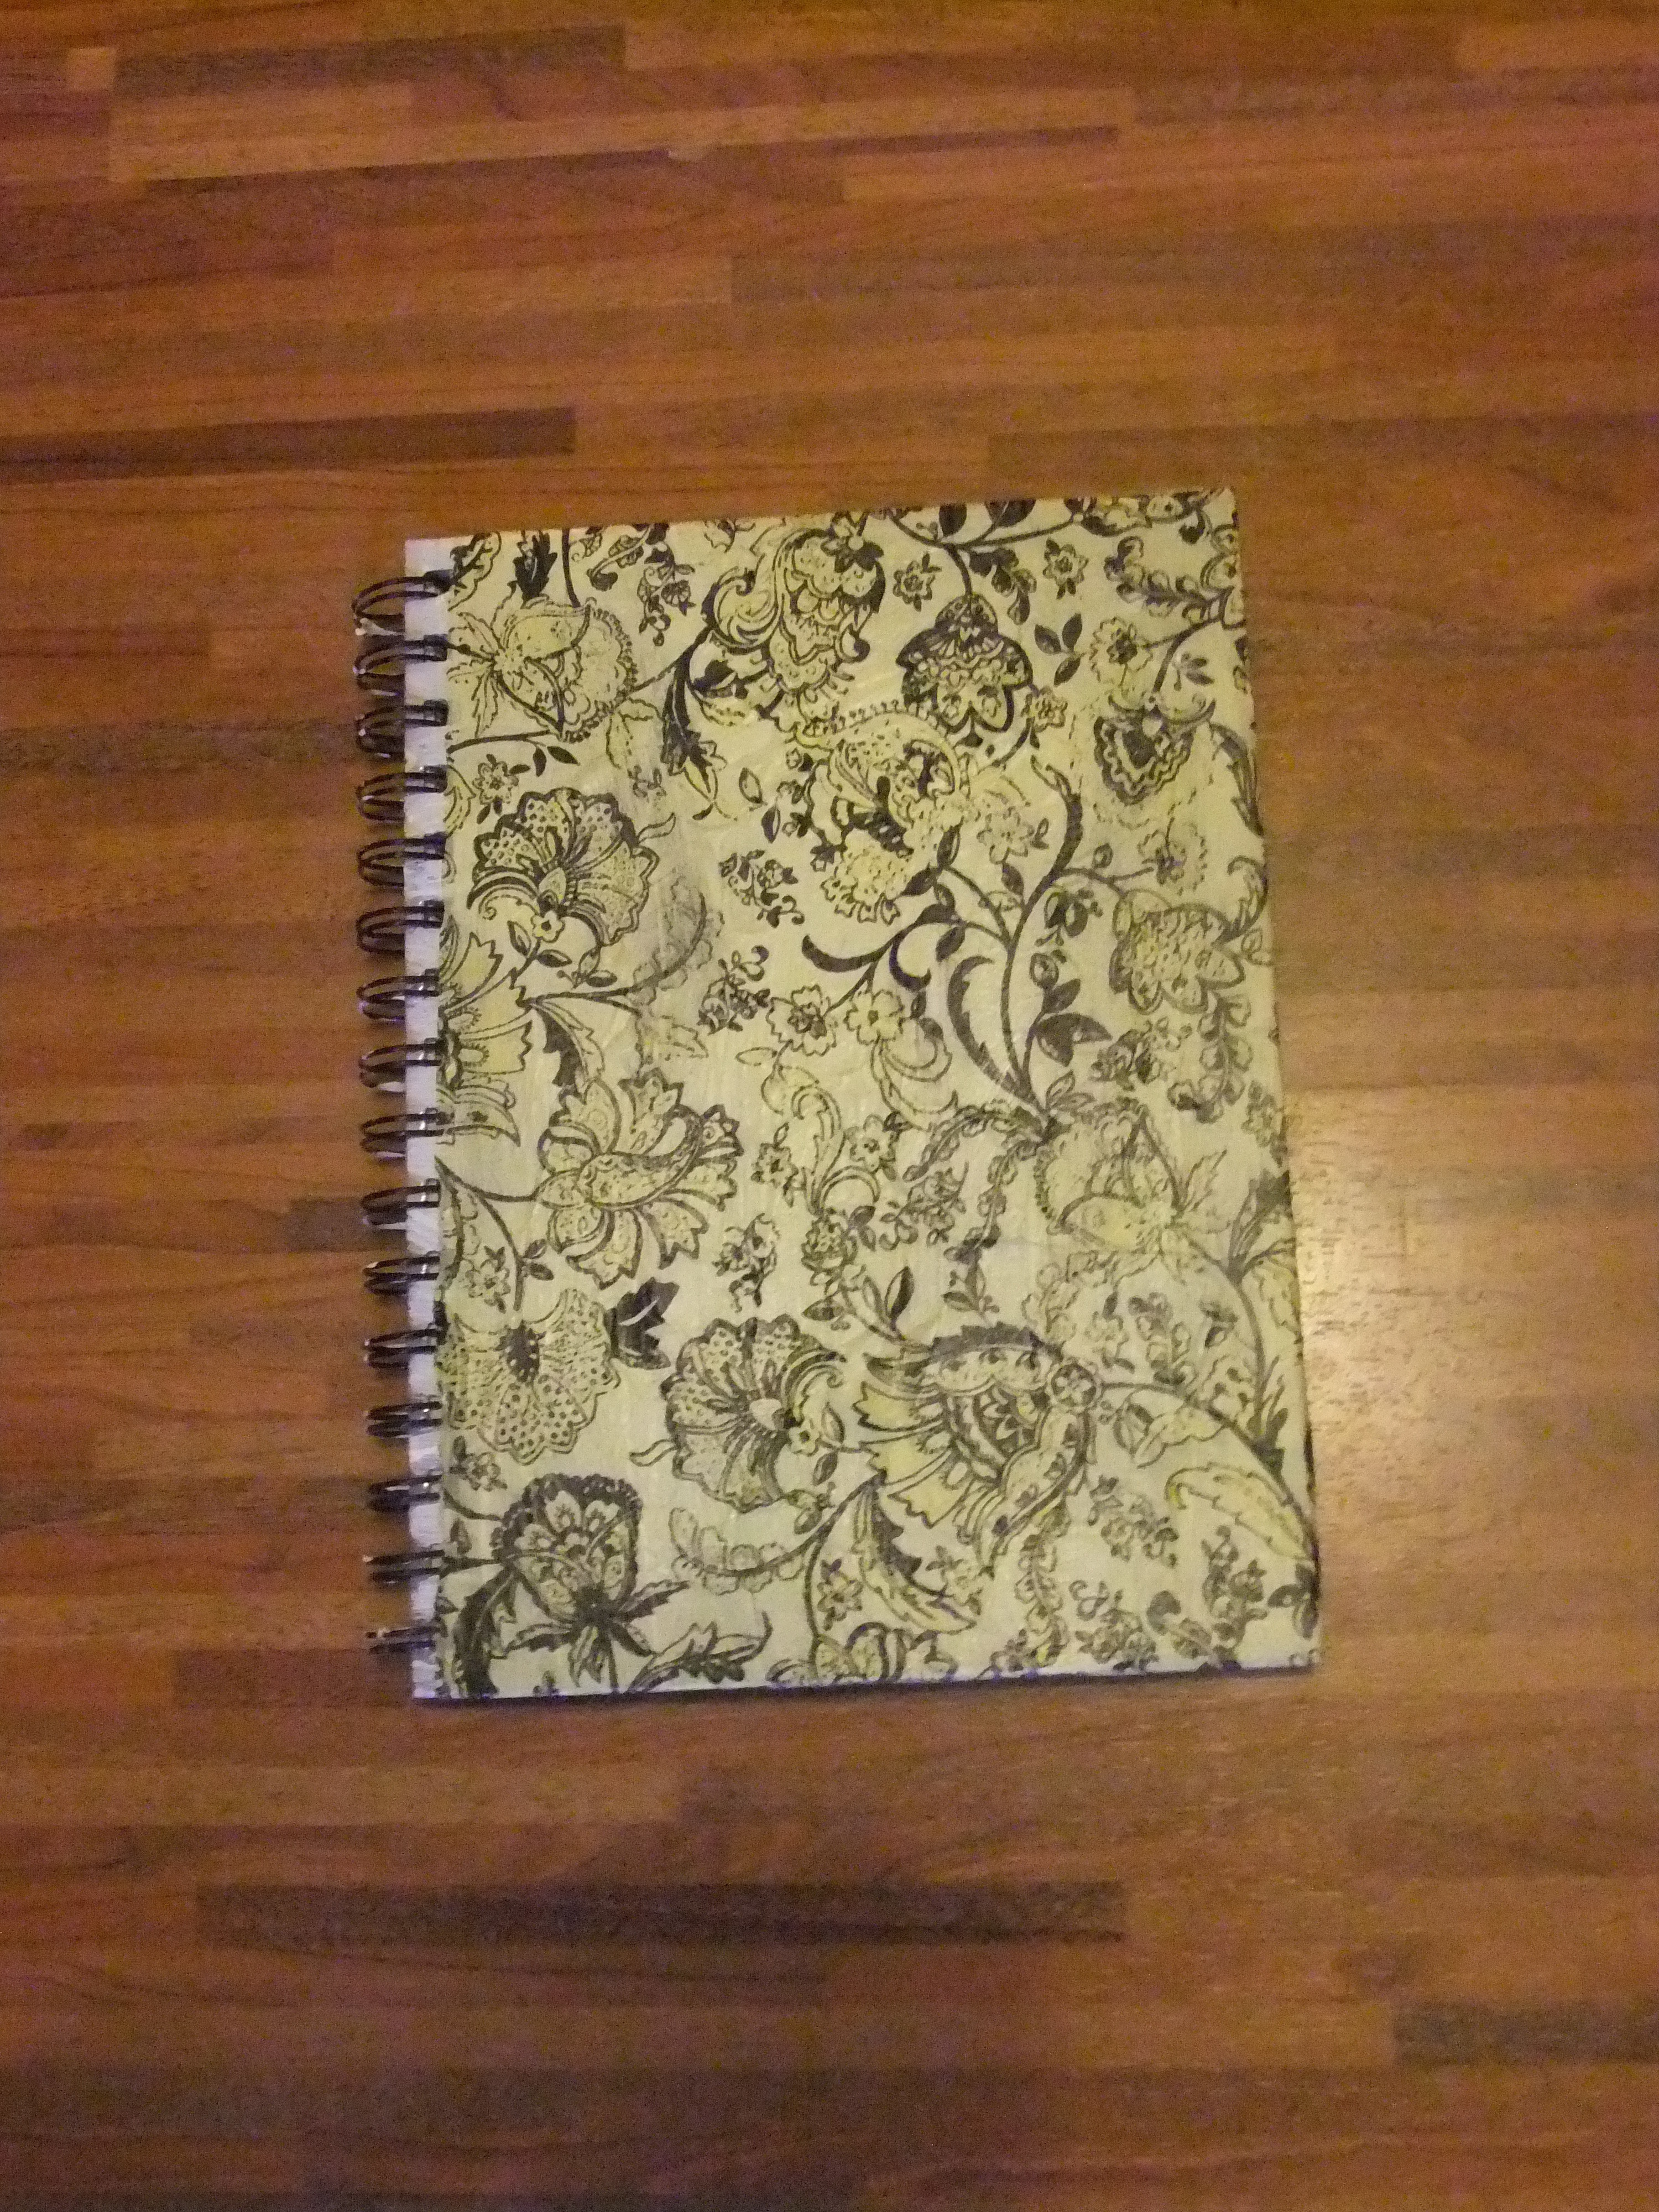 Easy Paper Book Cover : Notebook cover made of paper · how to make a book